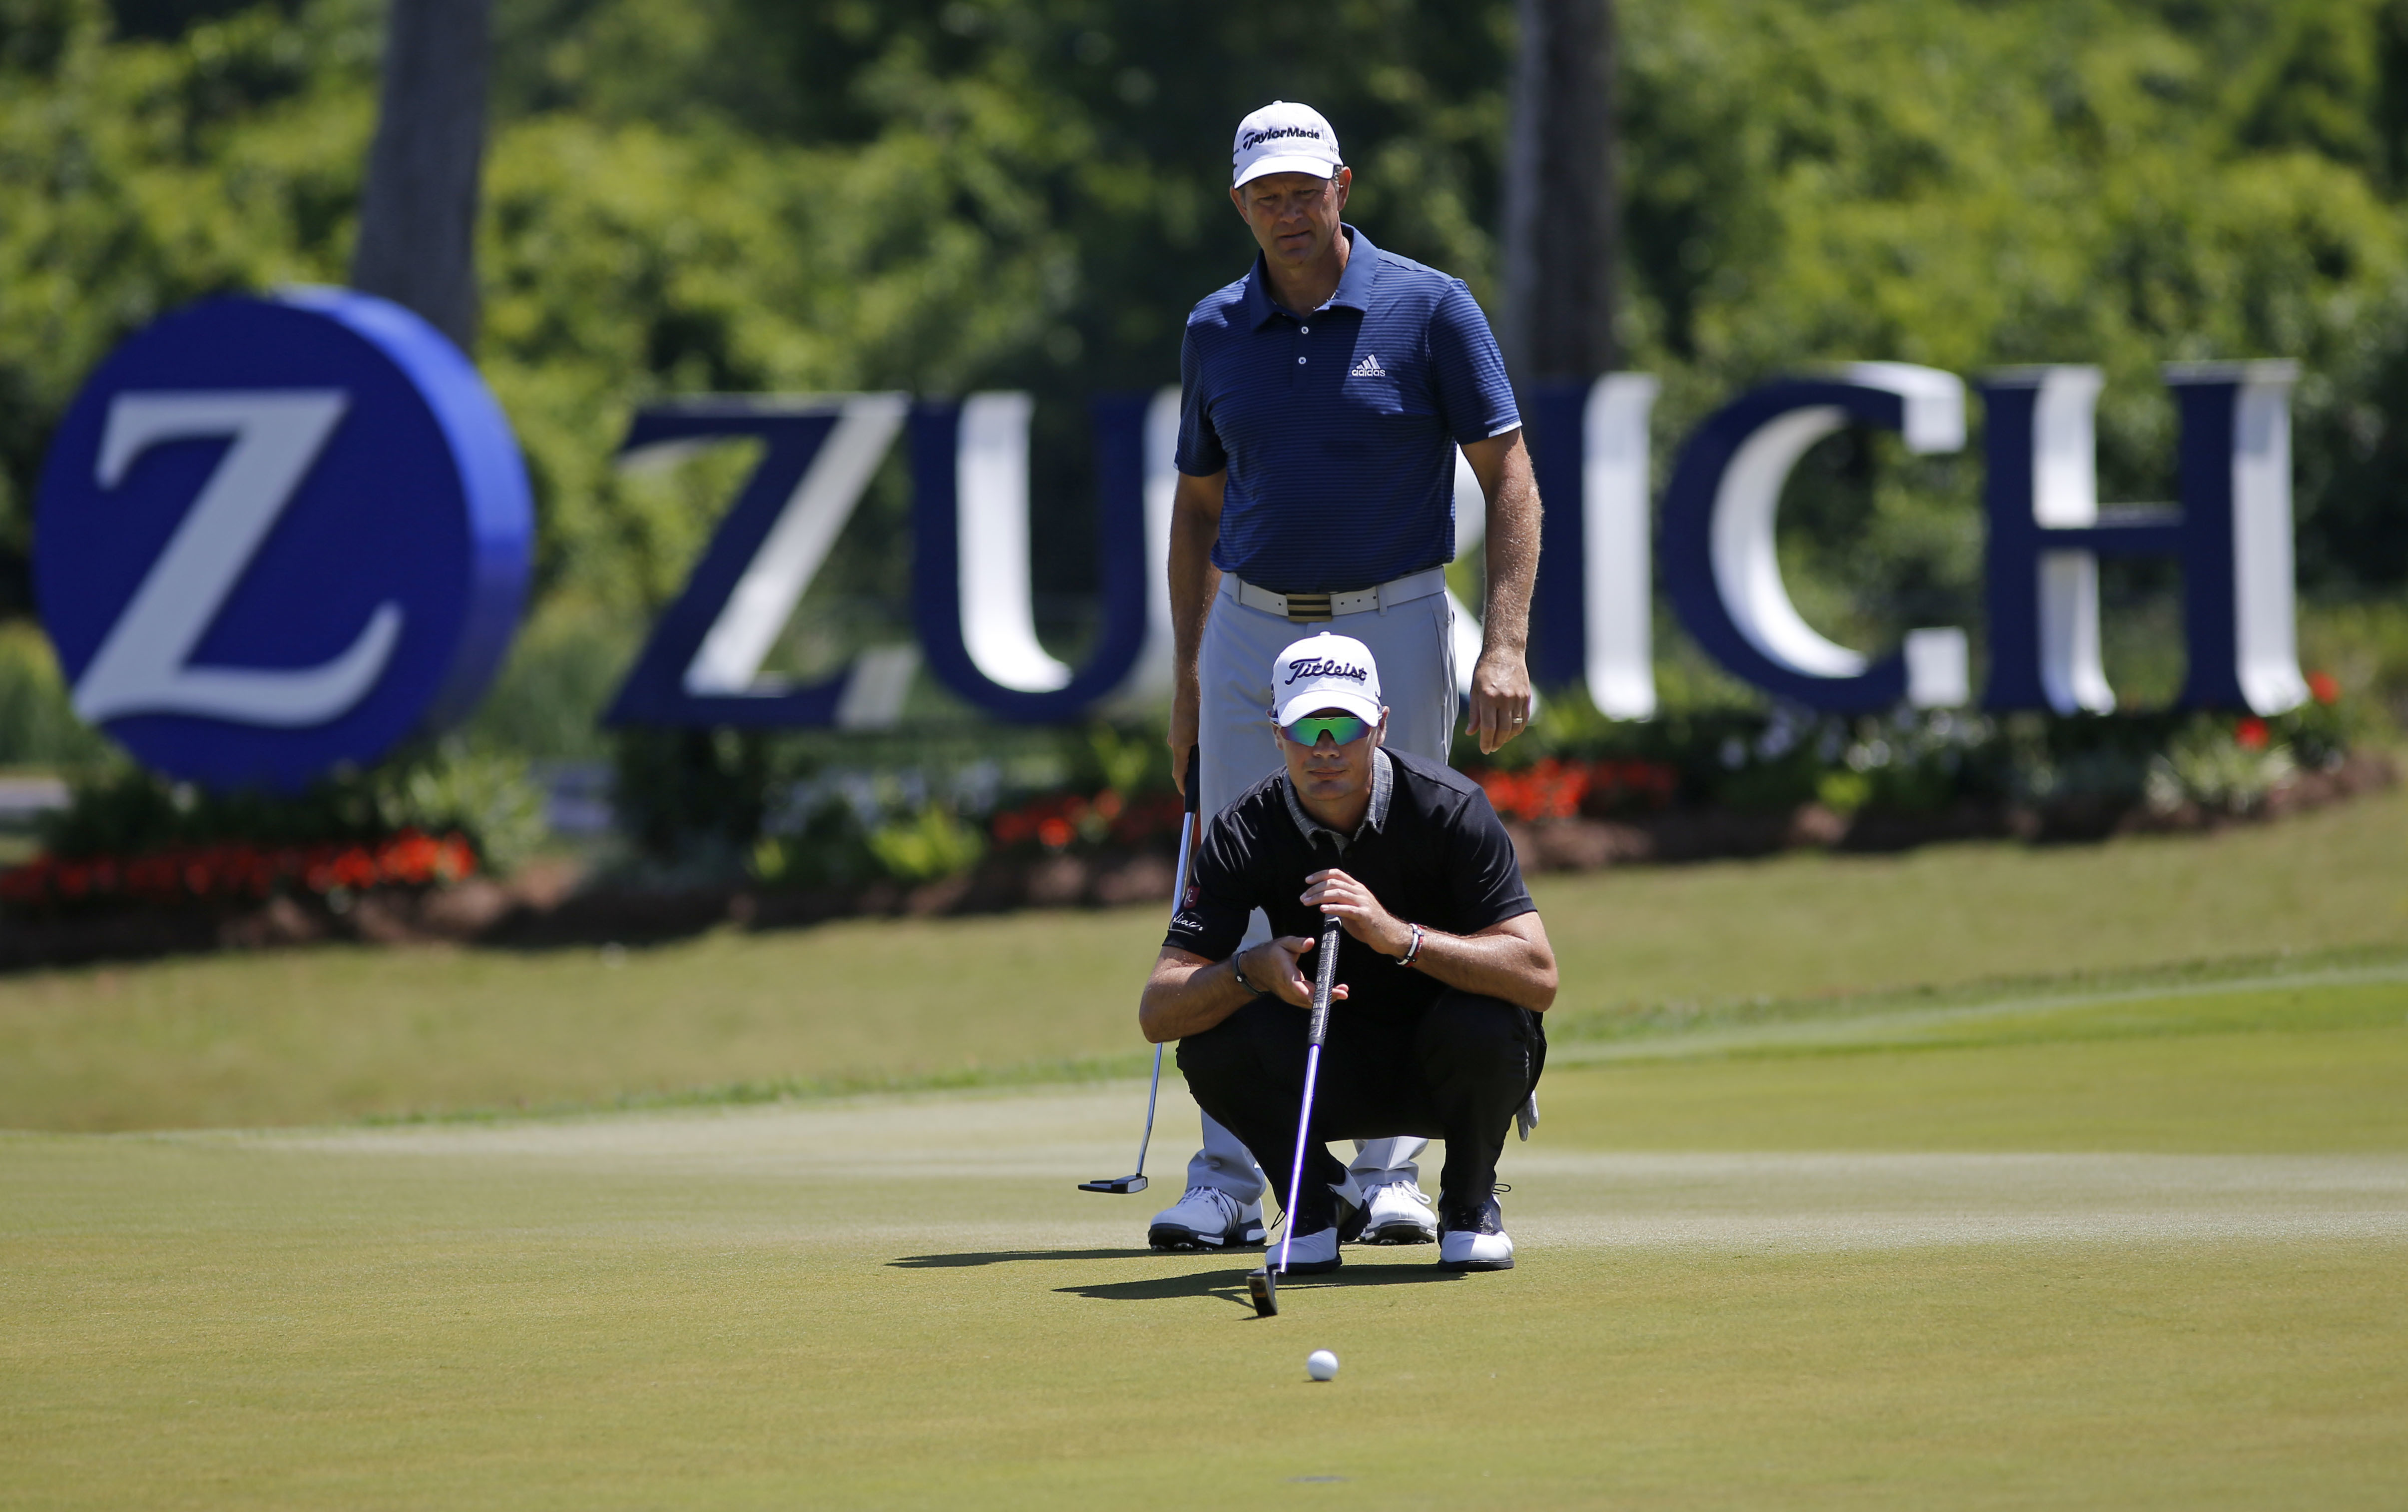 South Africa's Retief Goosen, standing, watches as teammate and compatriot Tyrone Van Aswegen lines up a shot on the 17th green, during the first round of the PGA Zurich Classic golf tournament's new two-man team format at TPC Louisiana in Avondale, La.,